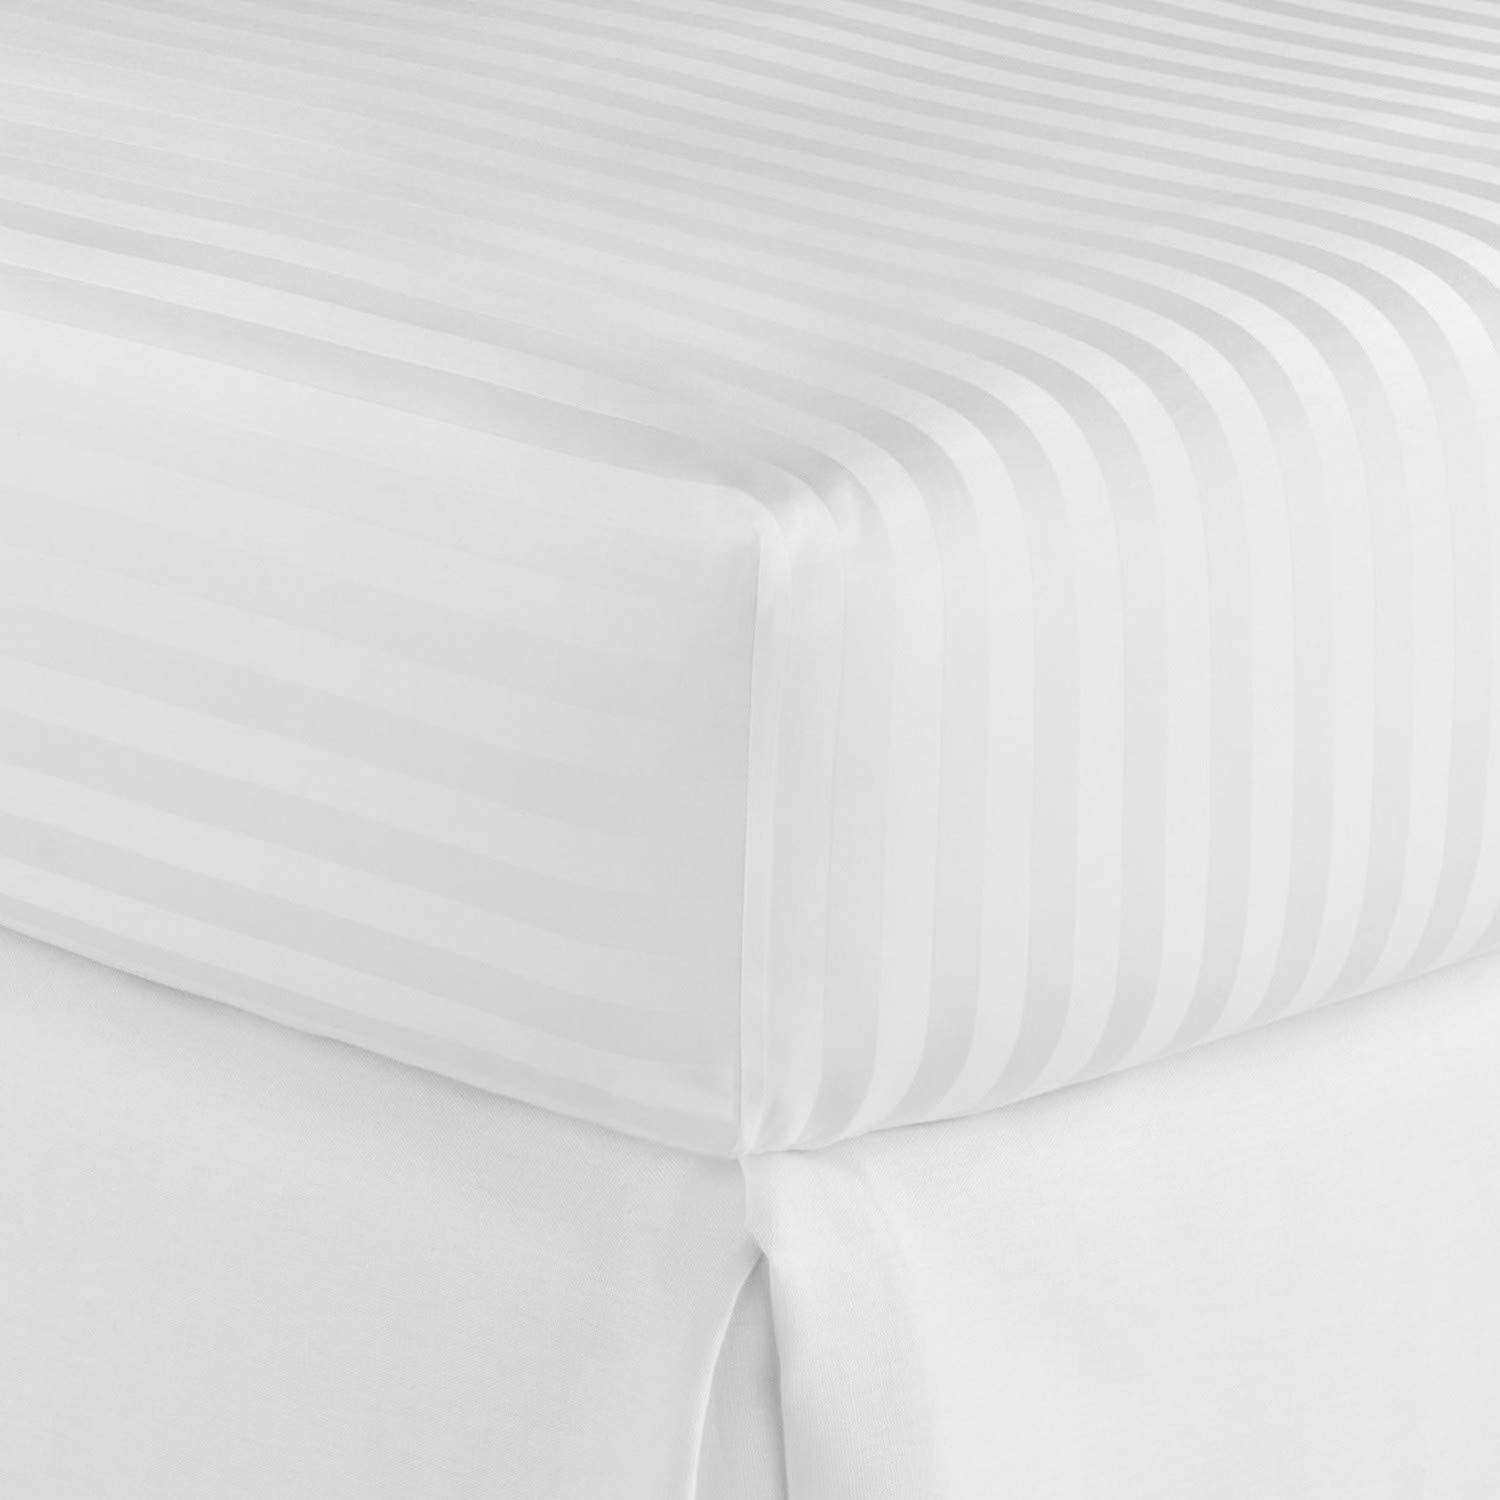 400 Thread Count 100 Percent Cotton Fitted Sheet Cal-King 15 Inch Deep Pocket Long Staple Cotton 1 Fitted Sheet Only Dark Grey Solid Sateen Weave Soft Breathable Elastic All Arount The Matress